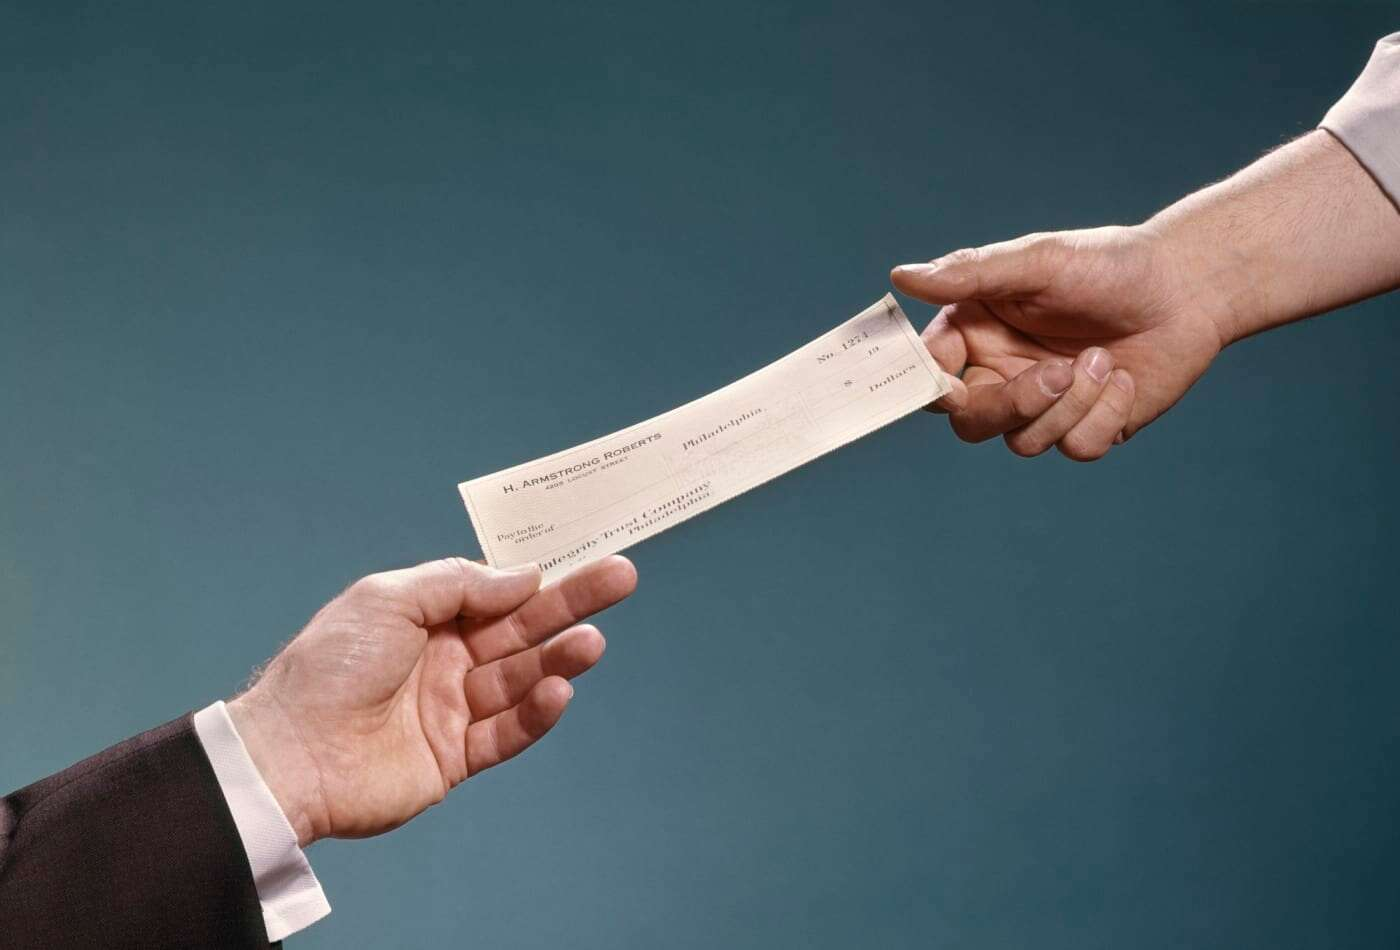 How to Find the Routing Number and Account number on a Check